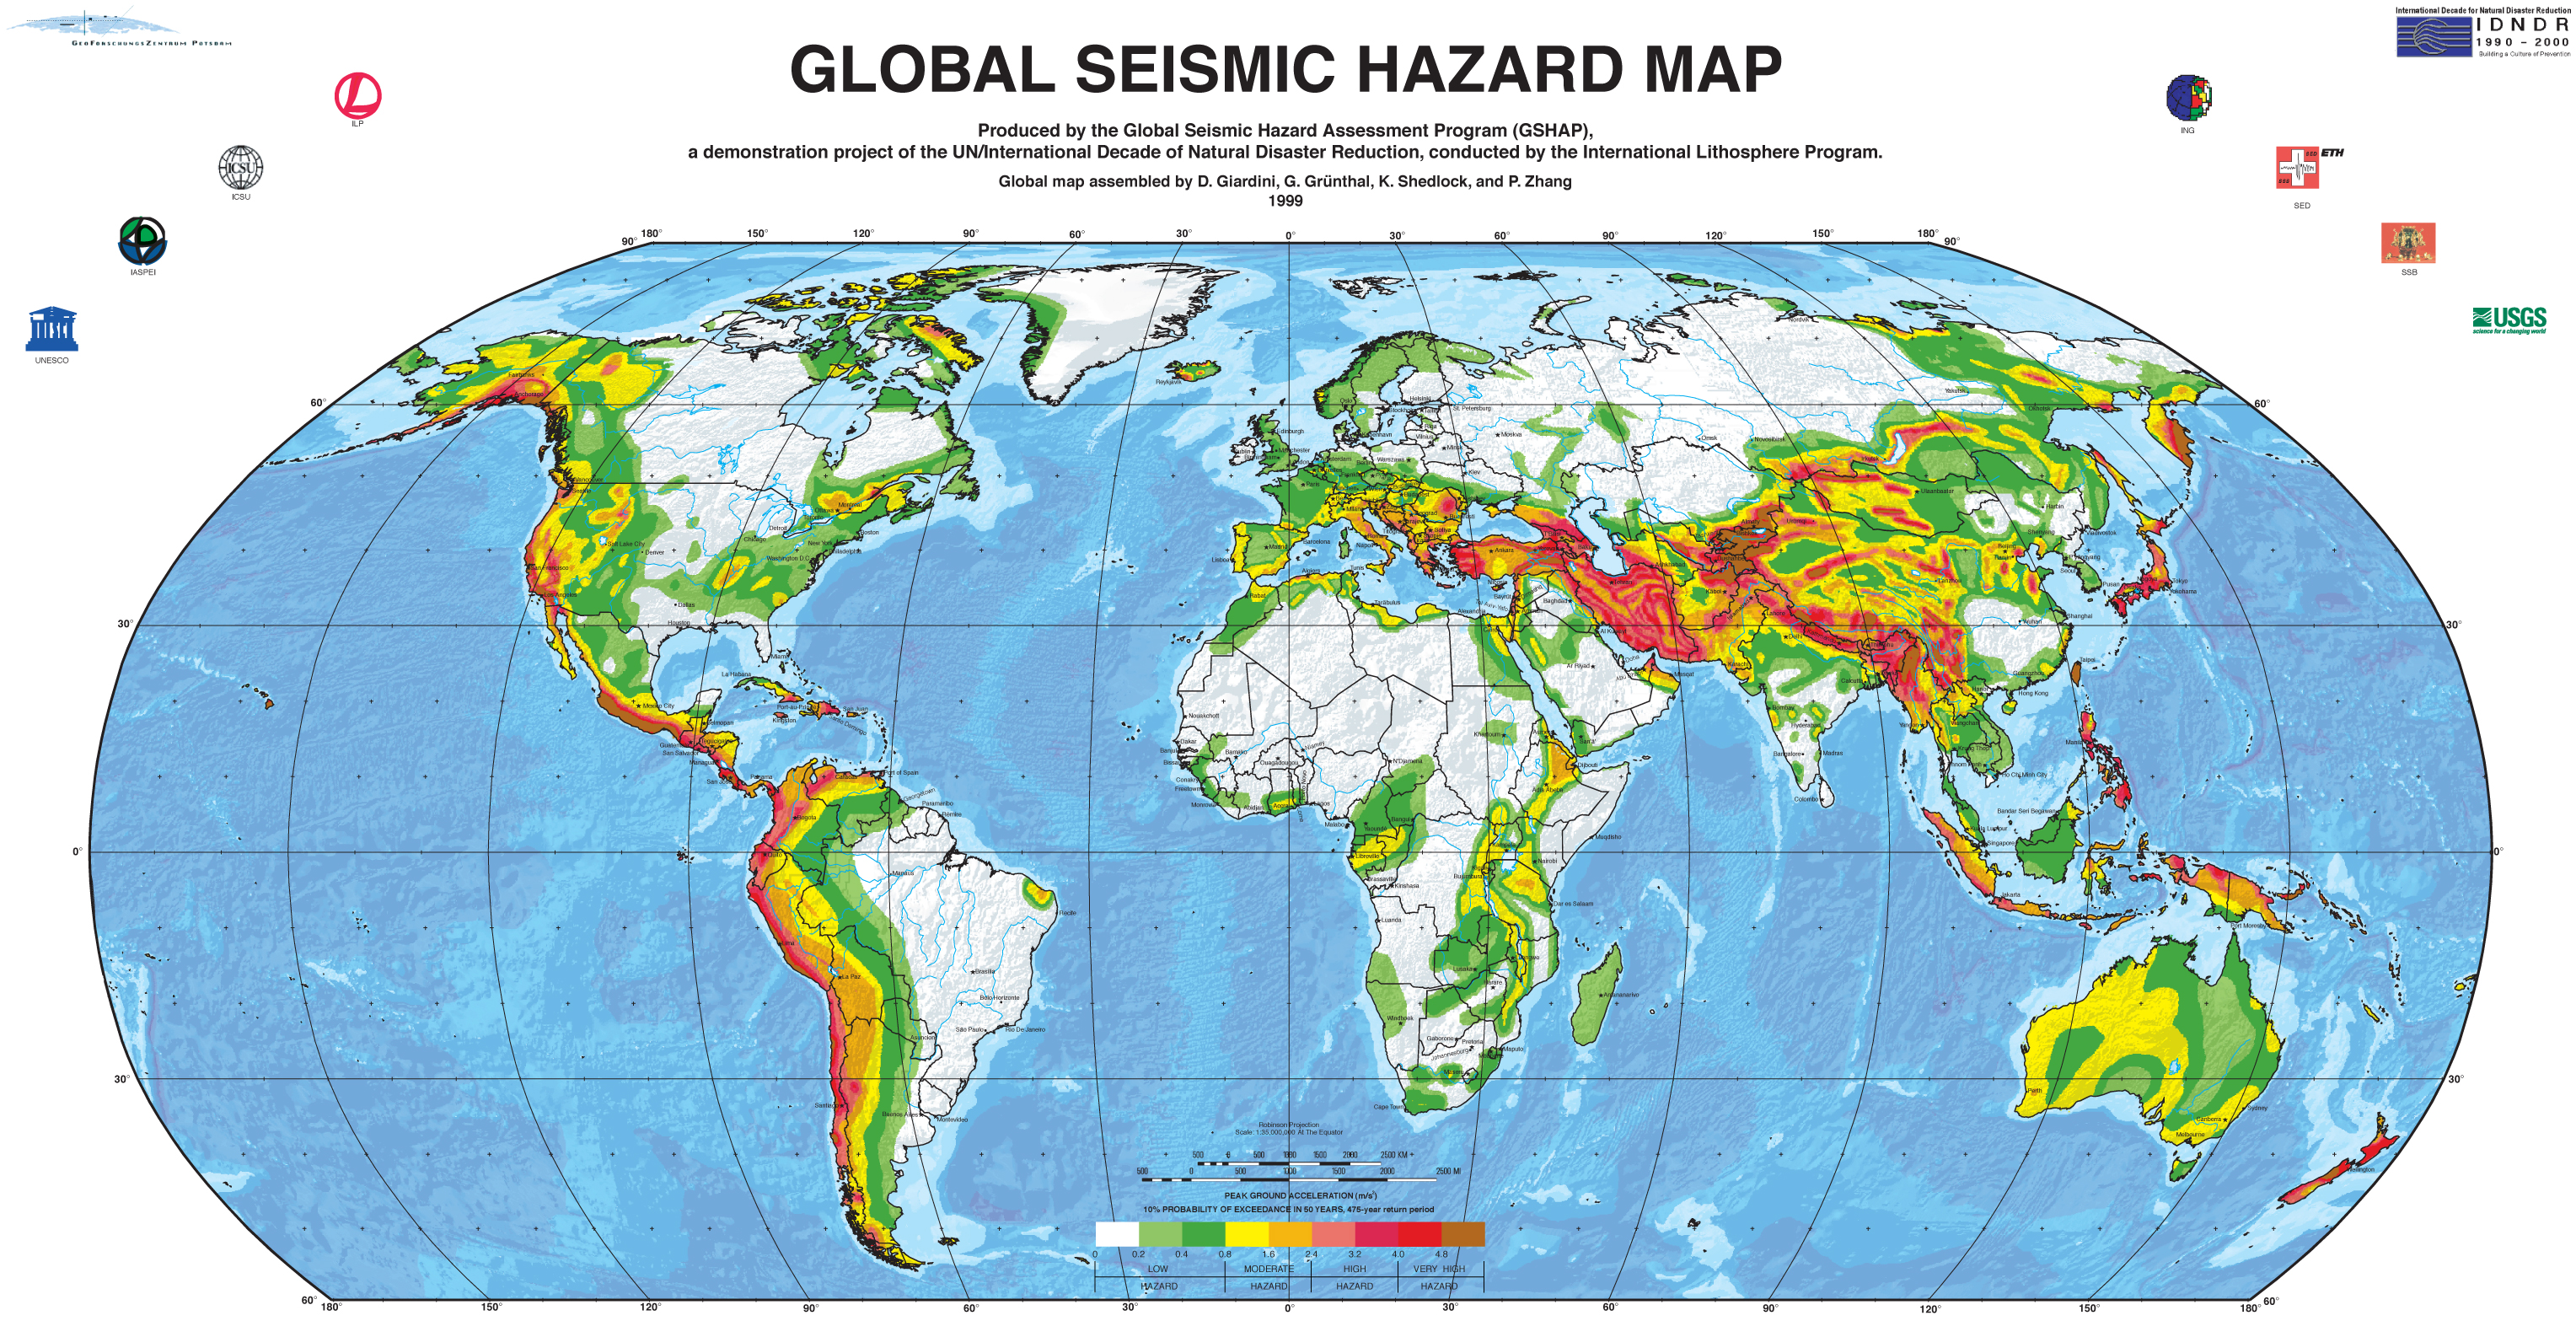 Seismic Hazard Maps and Data  SoCalGISorg